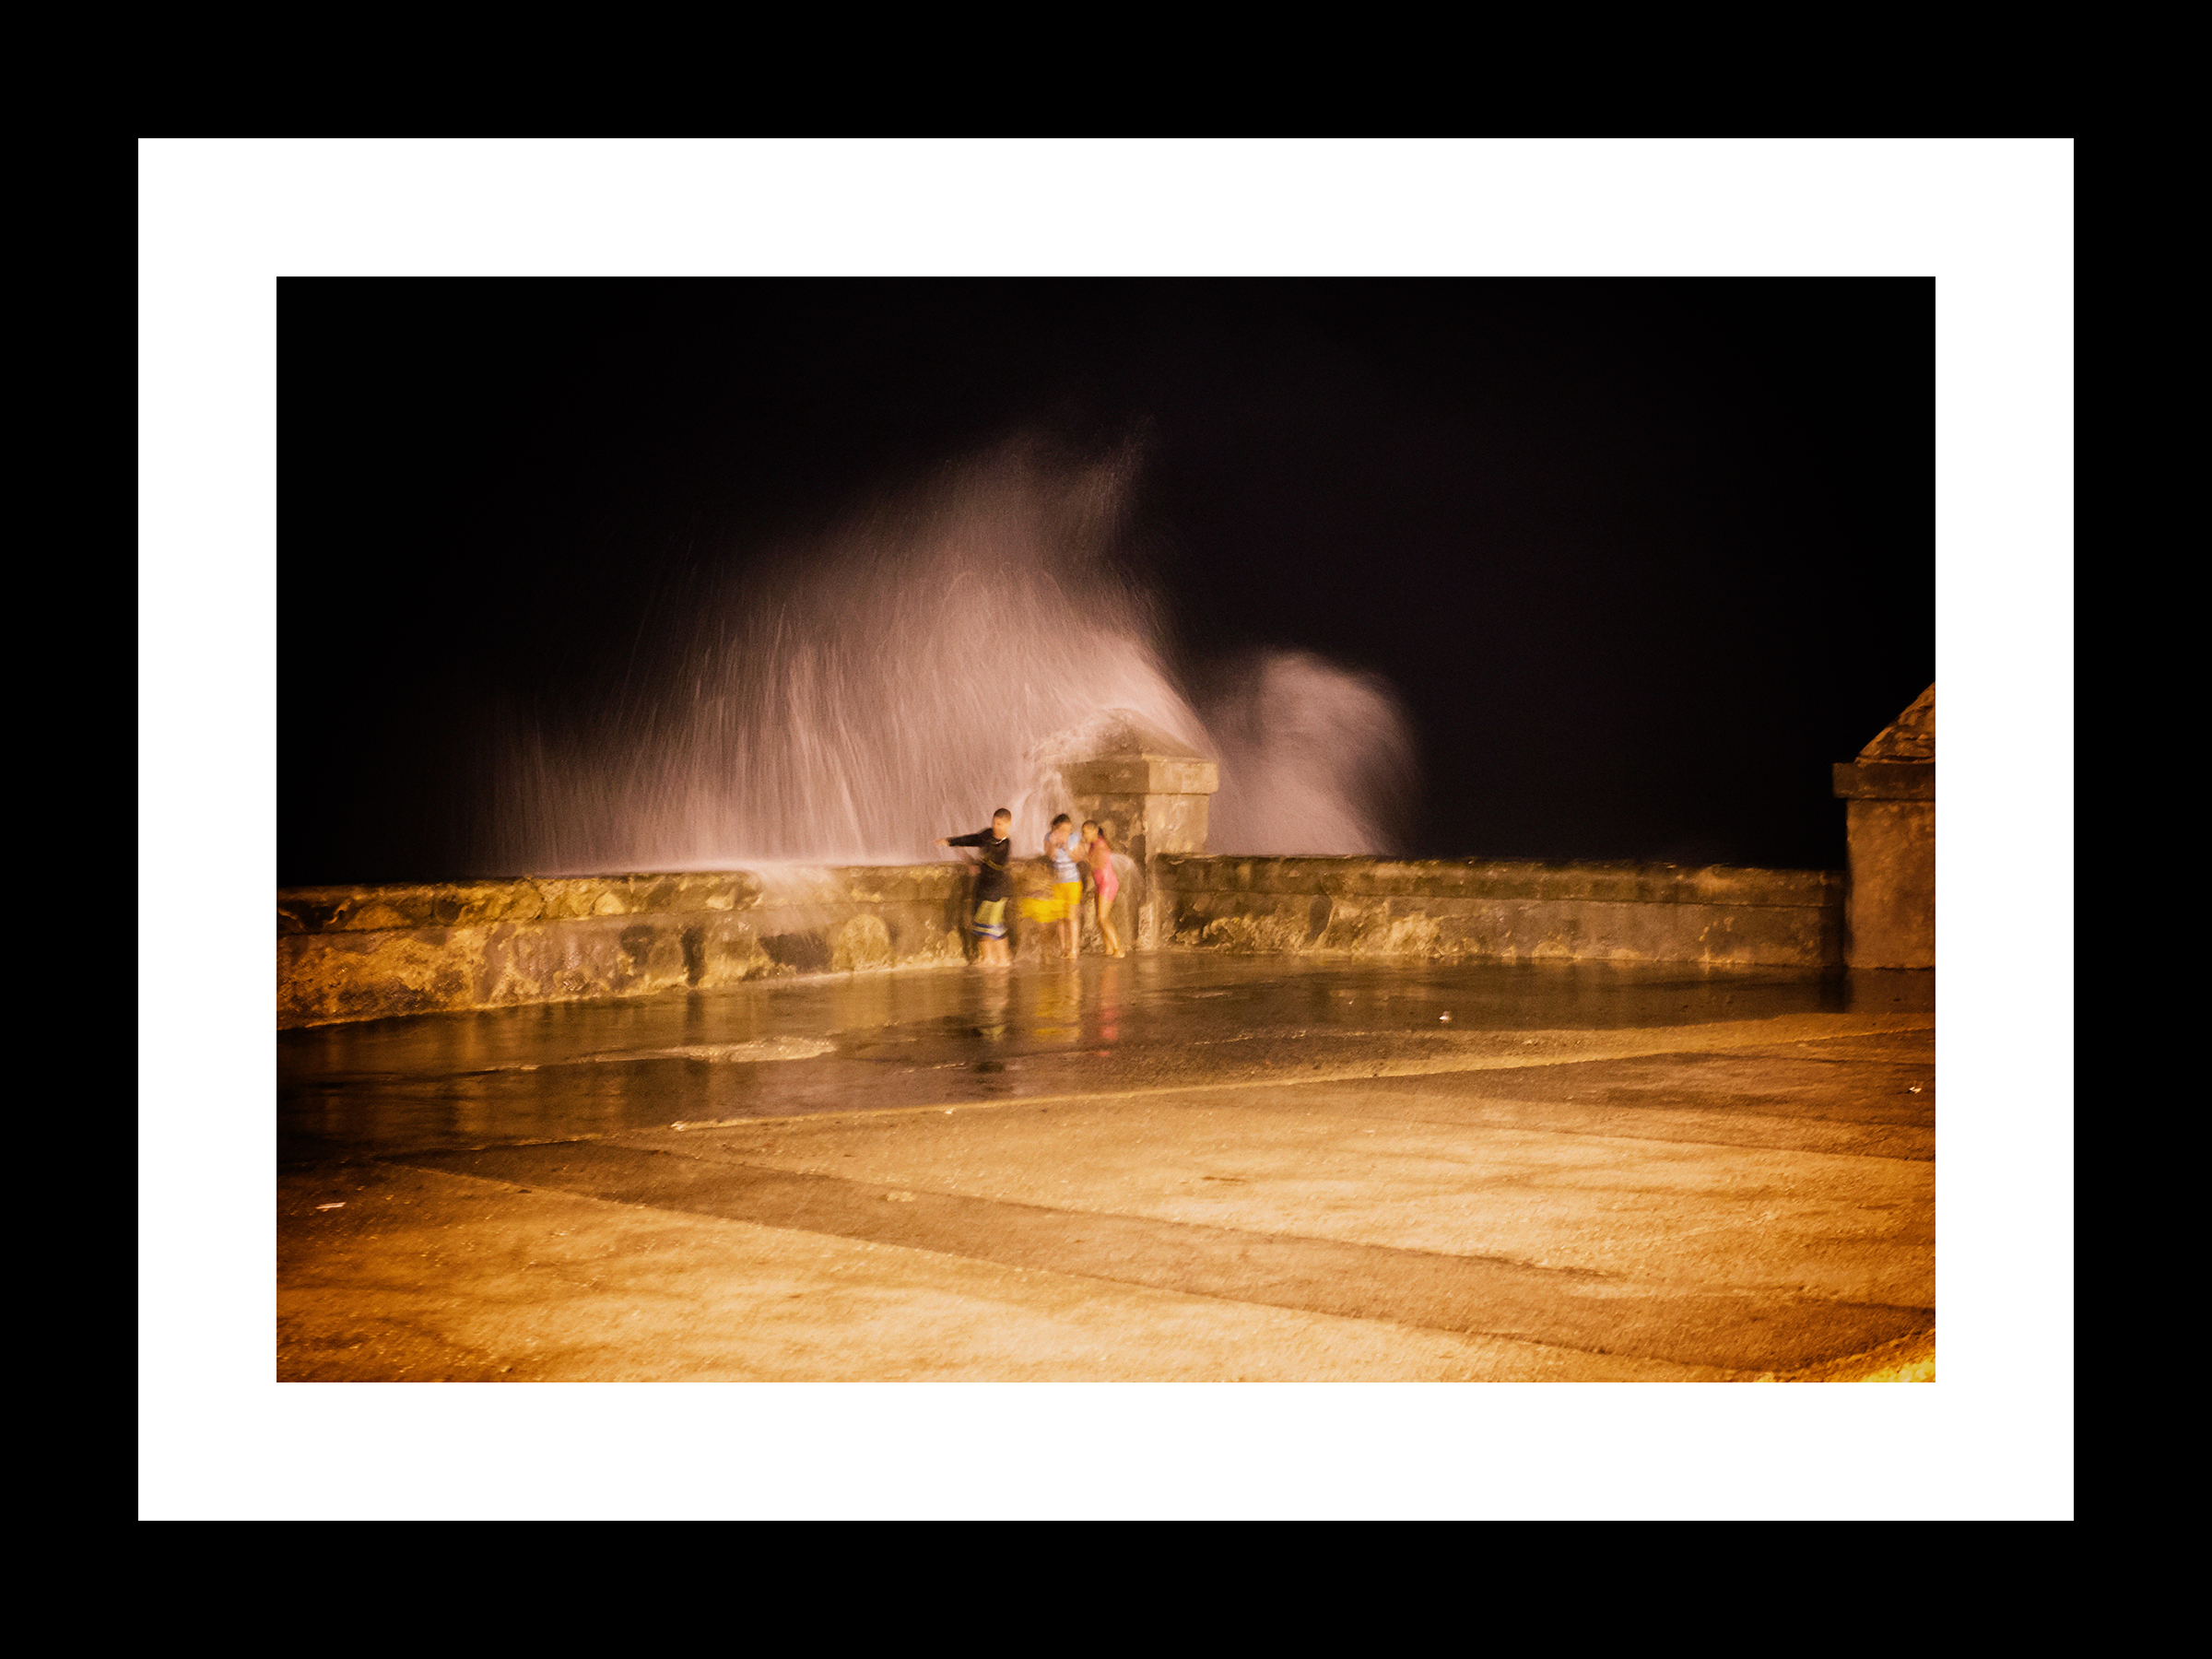 the Water Dance on the Malecón | © preston lewis thomas